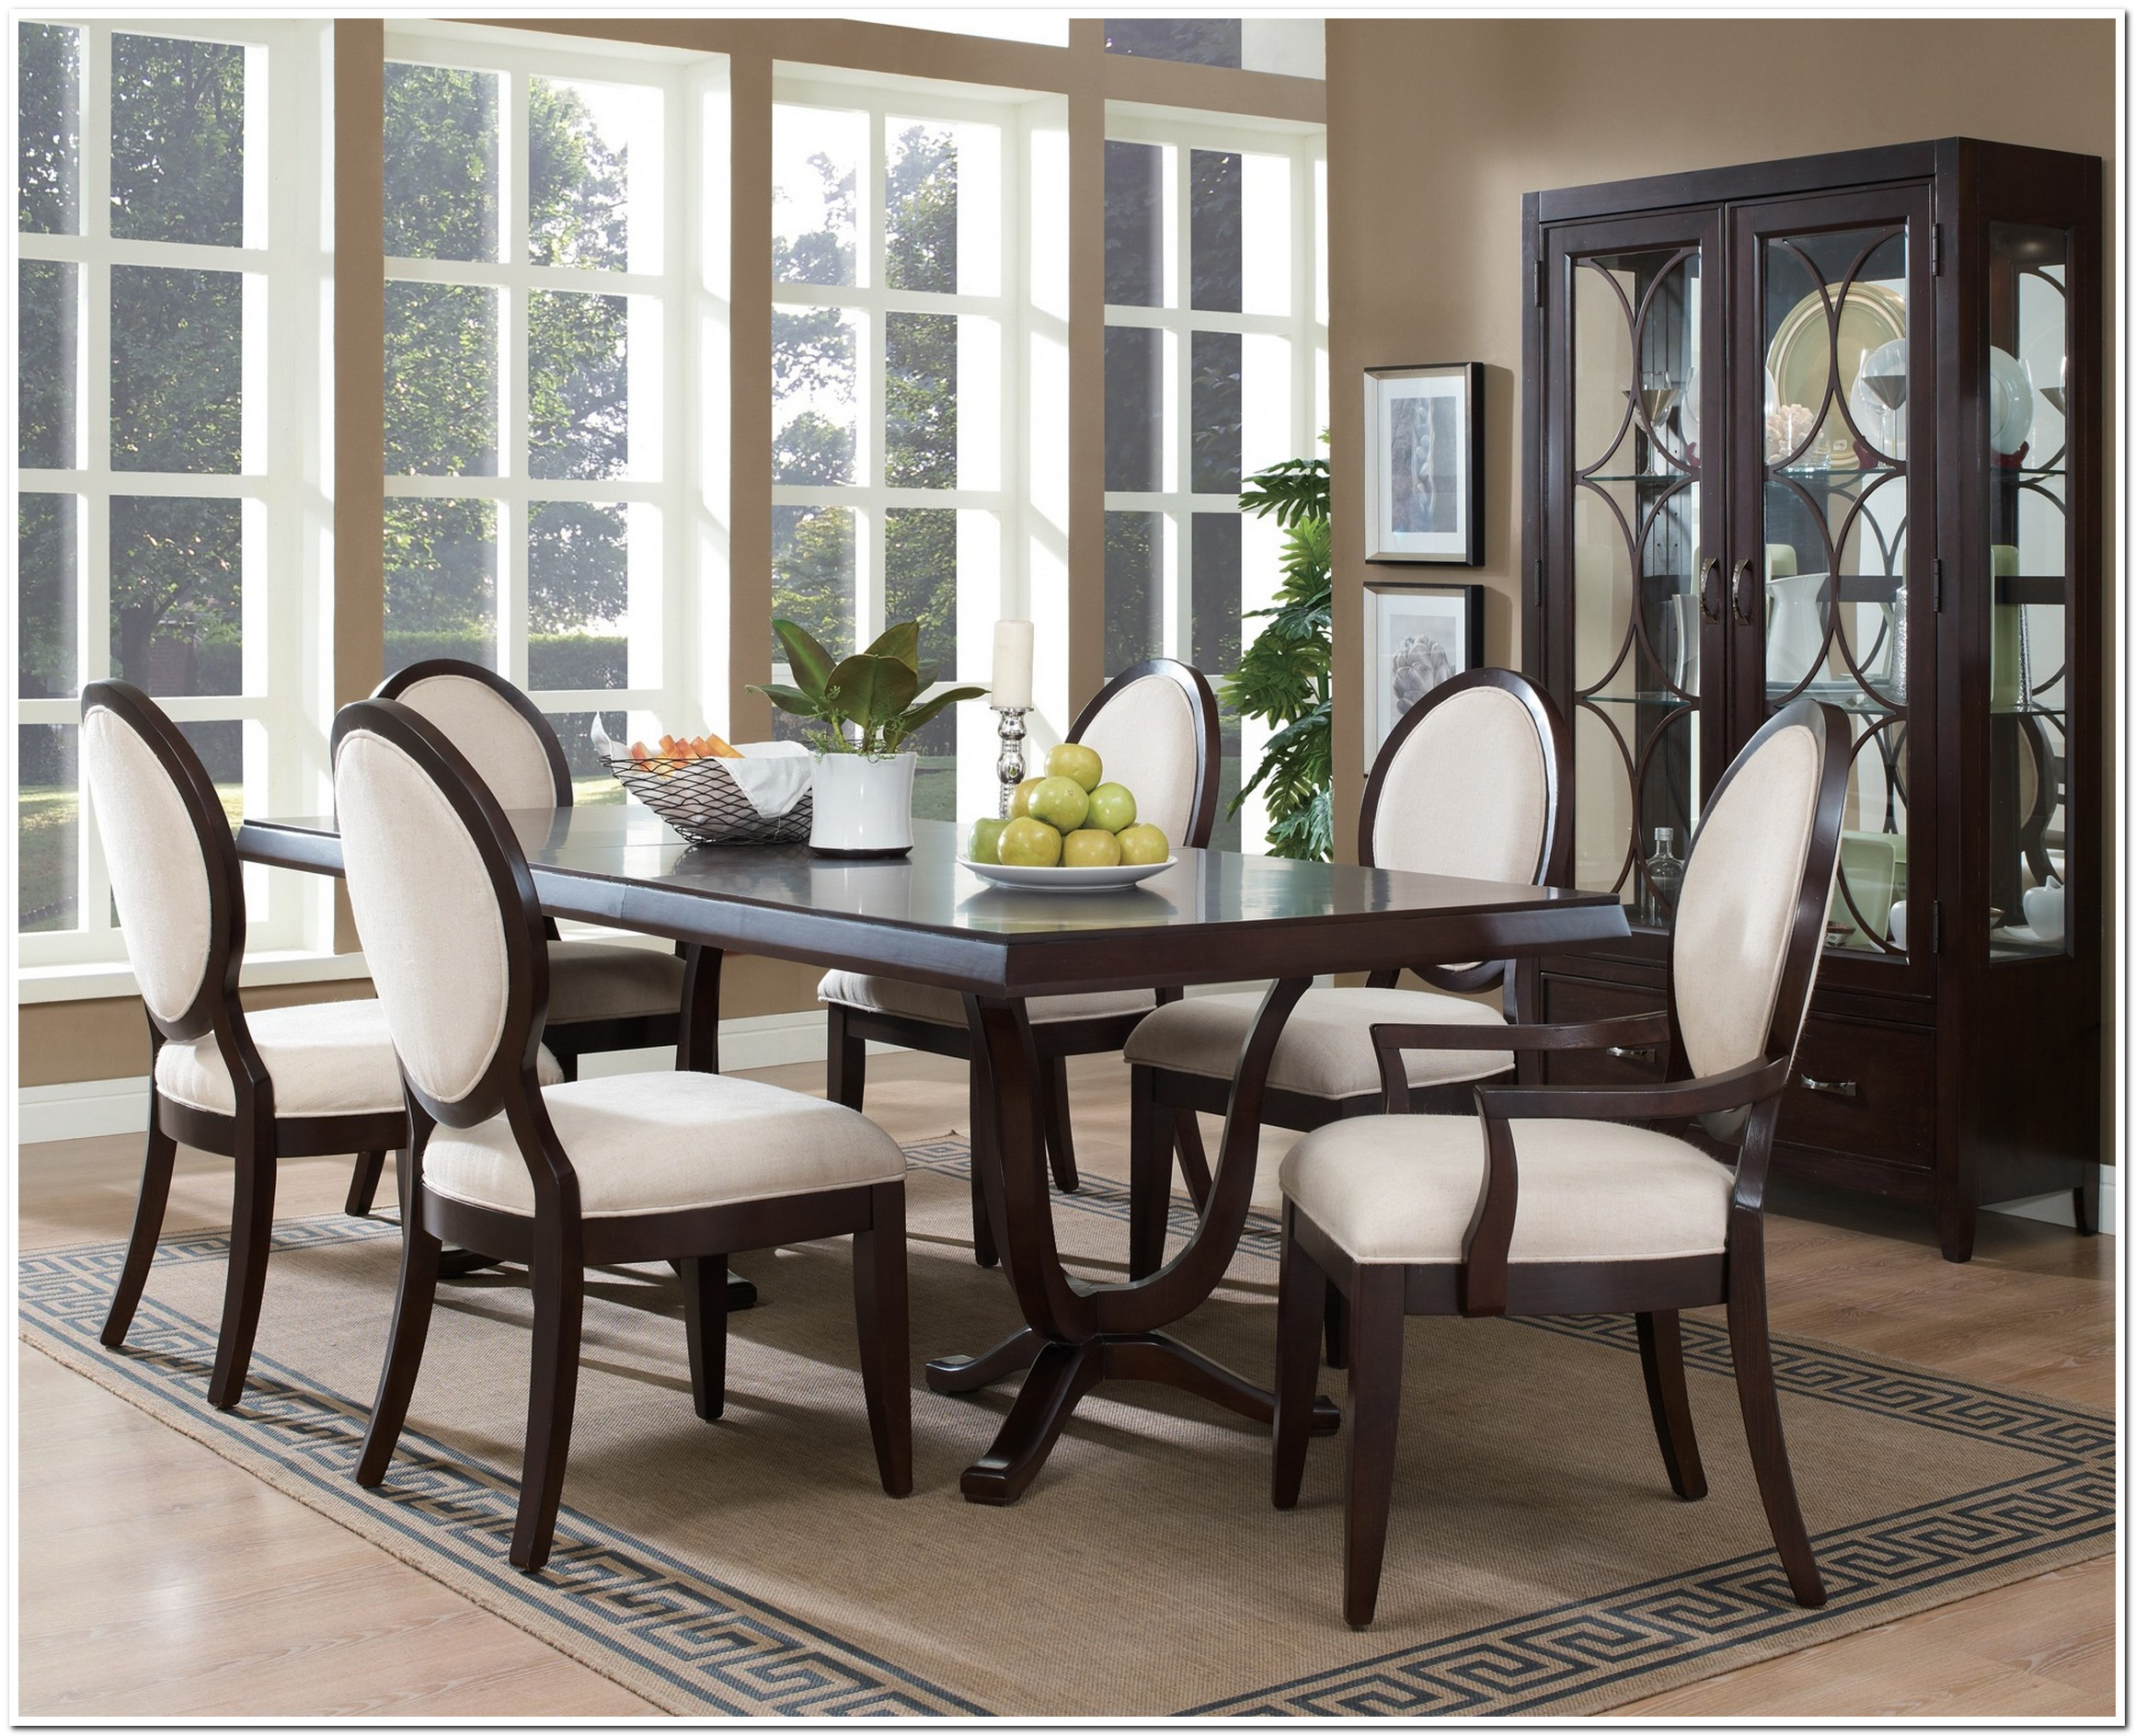 Know what dining room furniture sets you want to bring out with homesfeed - Images of dining room sets ...